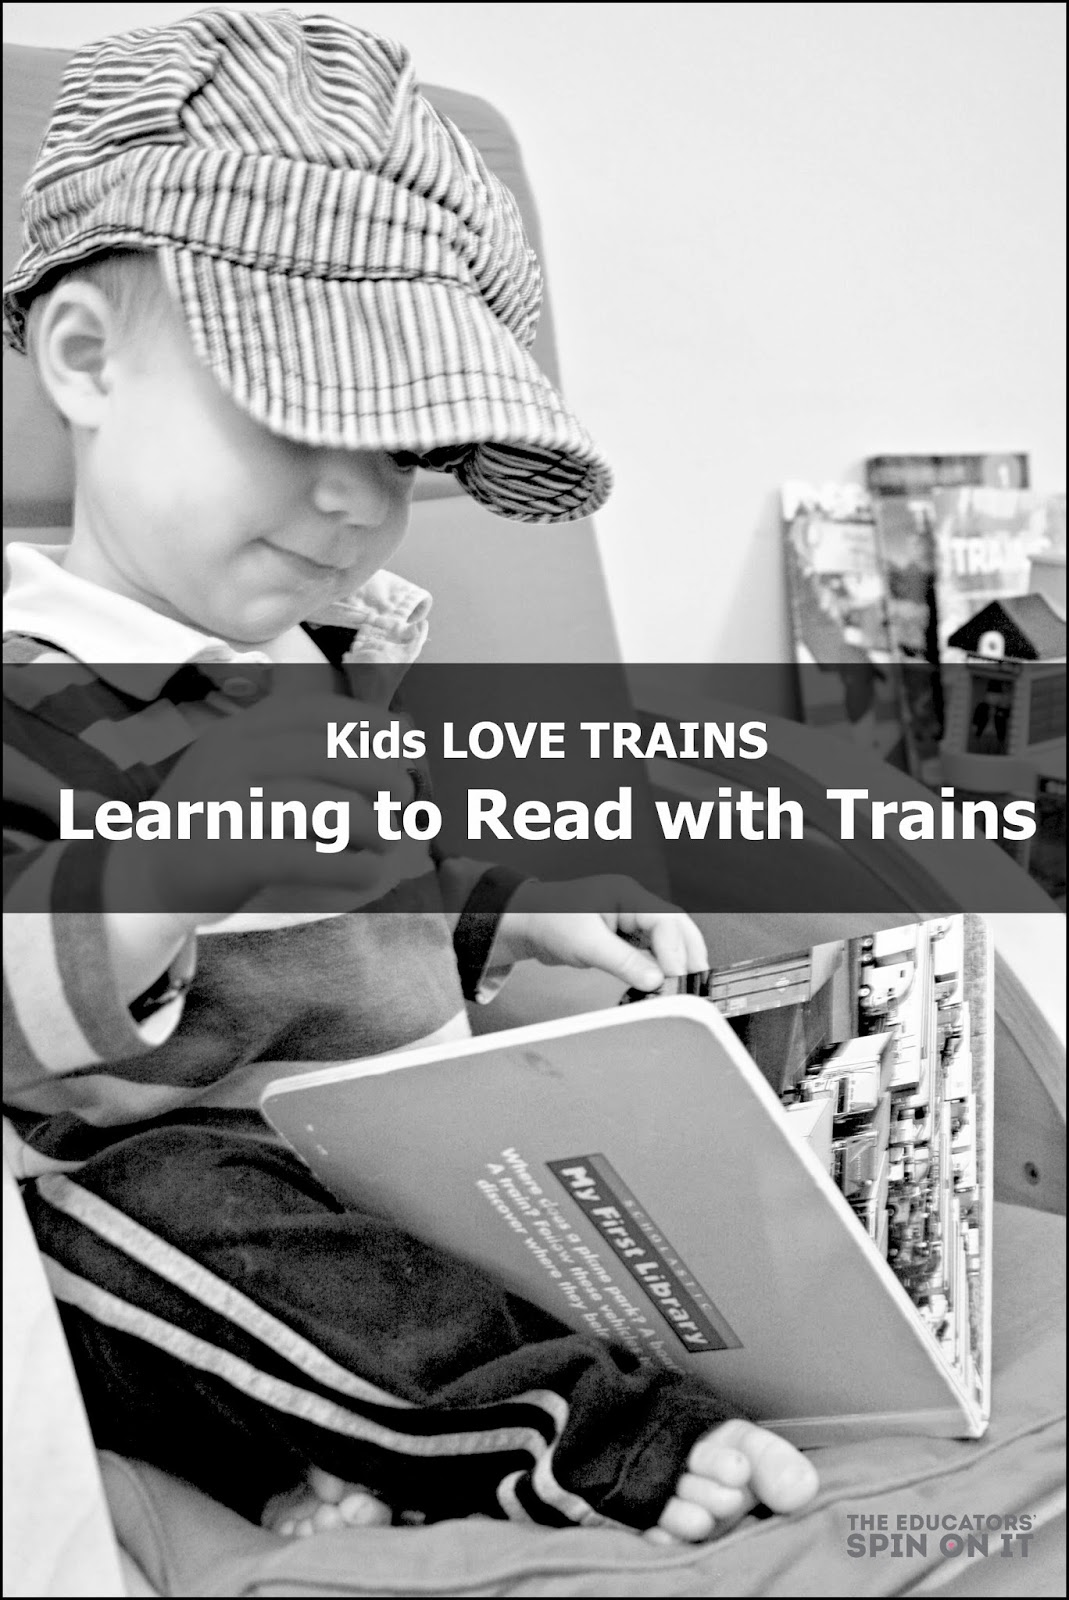 Little train enthusiasts getting excited about learning to read